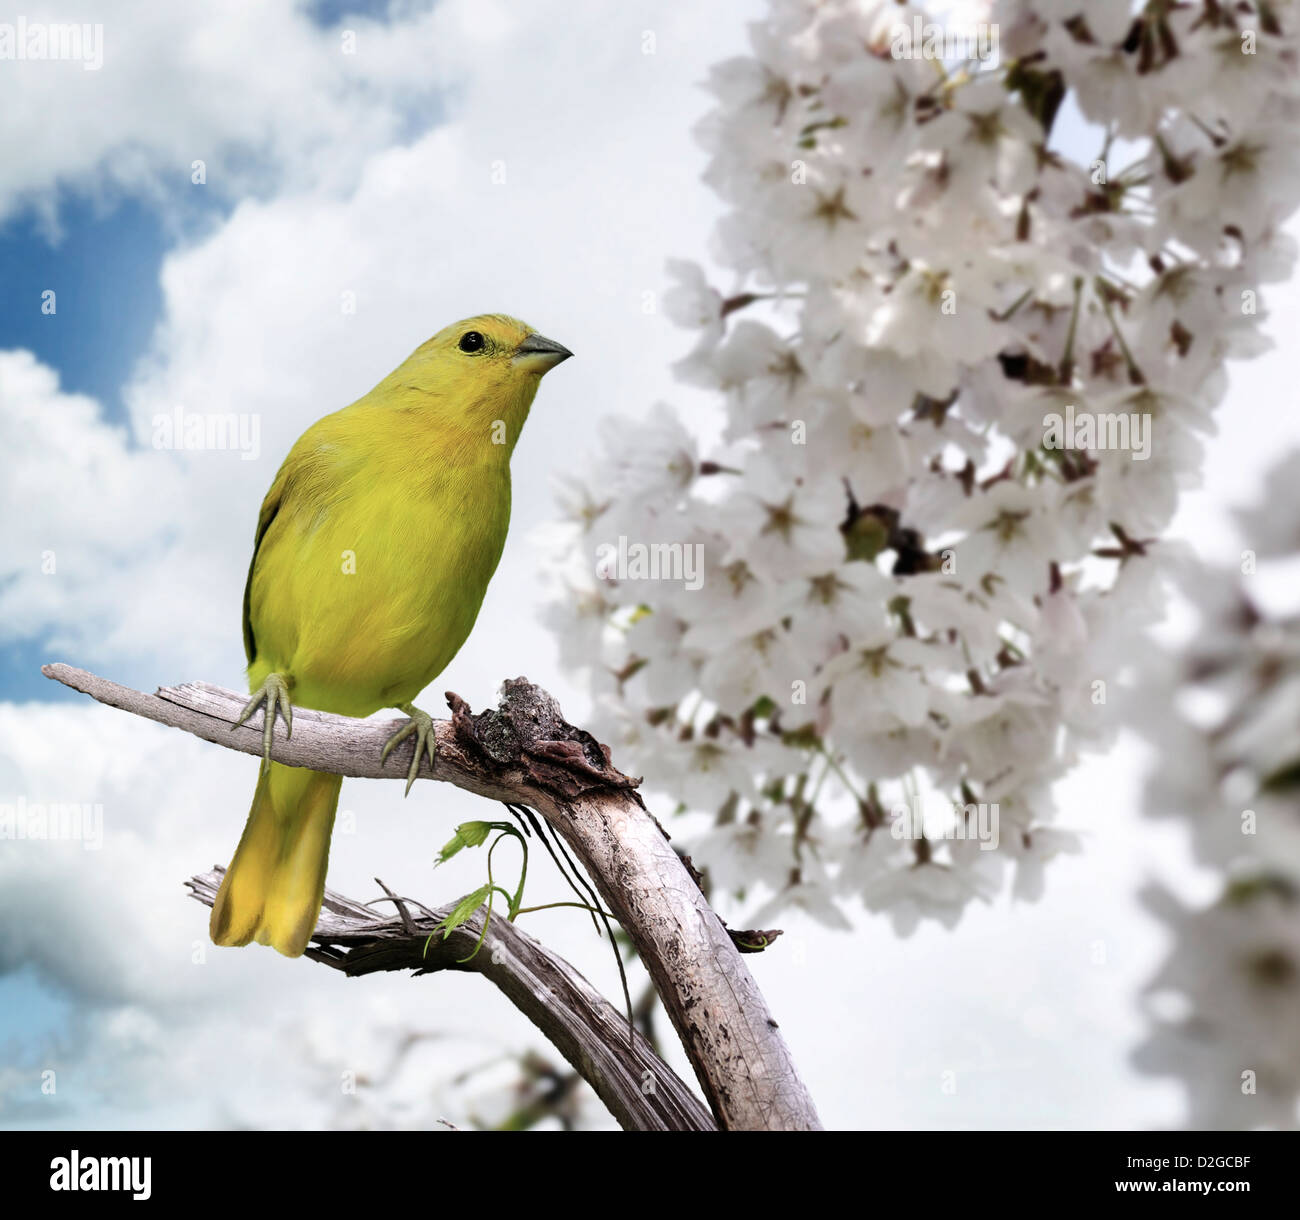 Yellow Bird Perching On A Branch - Stock Image